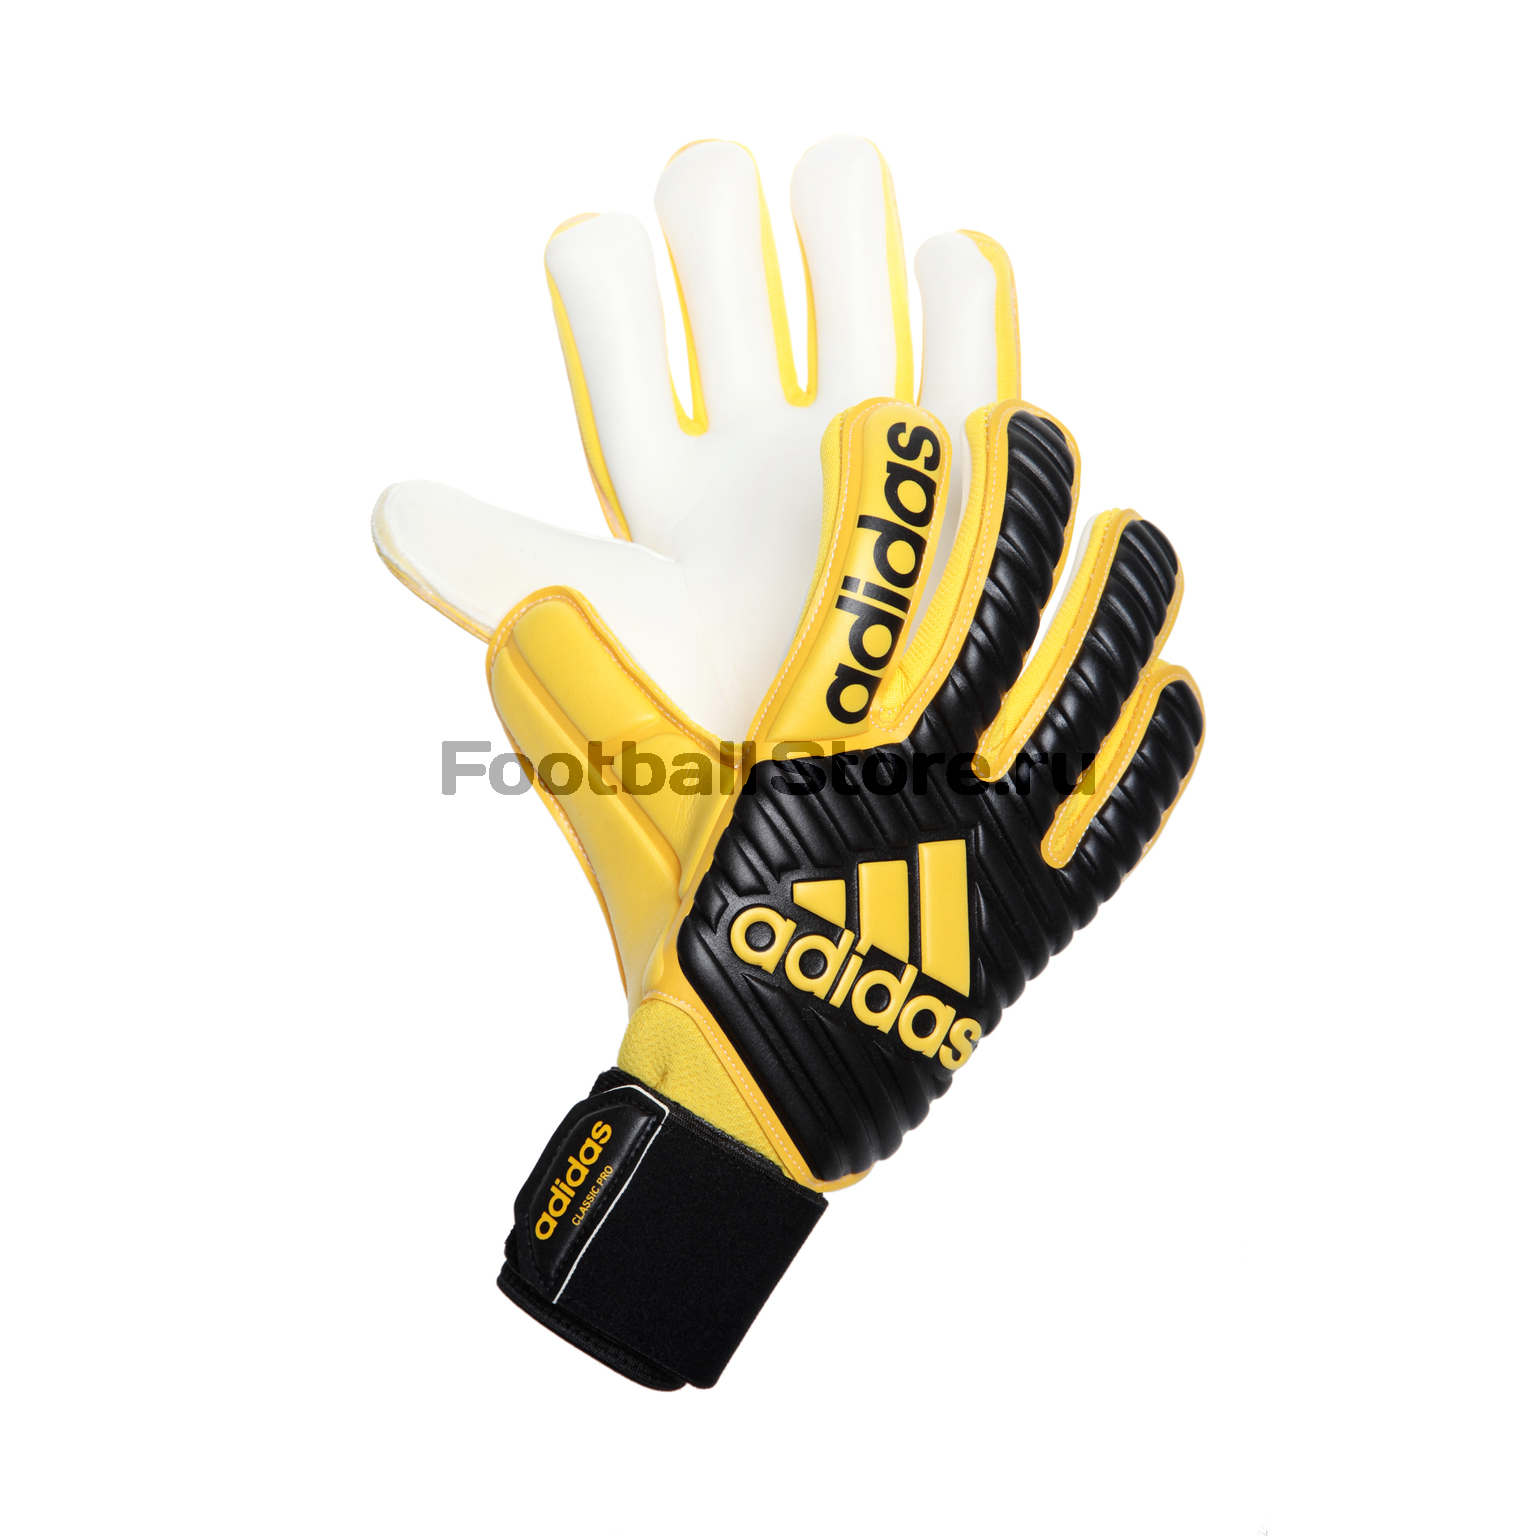 Перчатки Adidas Перчатки вратарские Adidas Classic Pro BS1536 накопитель ssd a data adata ultimate su800 512gb asu800ss 512gt c